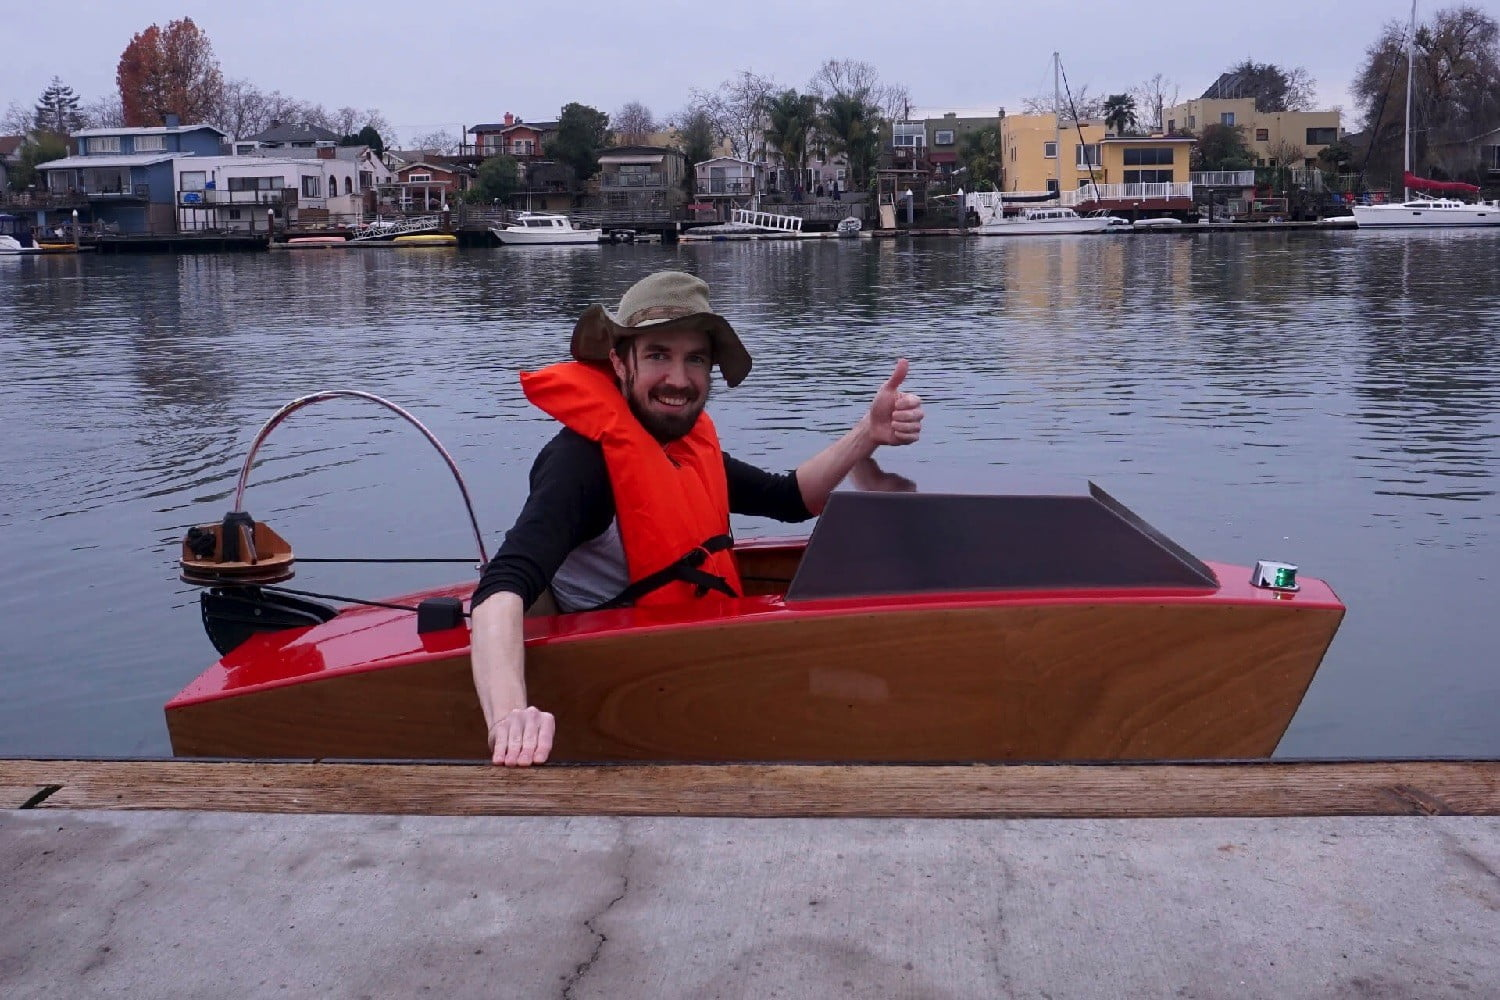 electric mini boat kit tulberg laser cut first launch josh thumbs up rapid whale